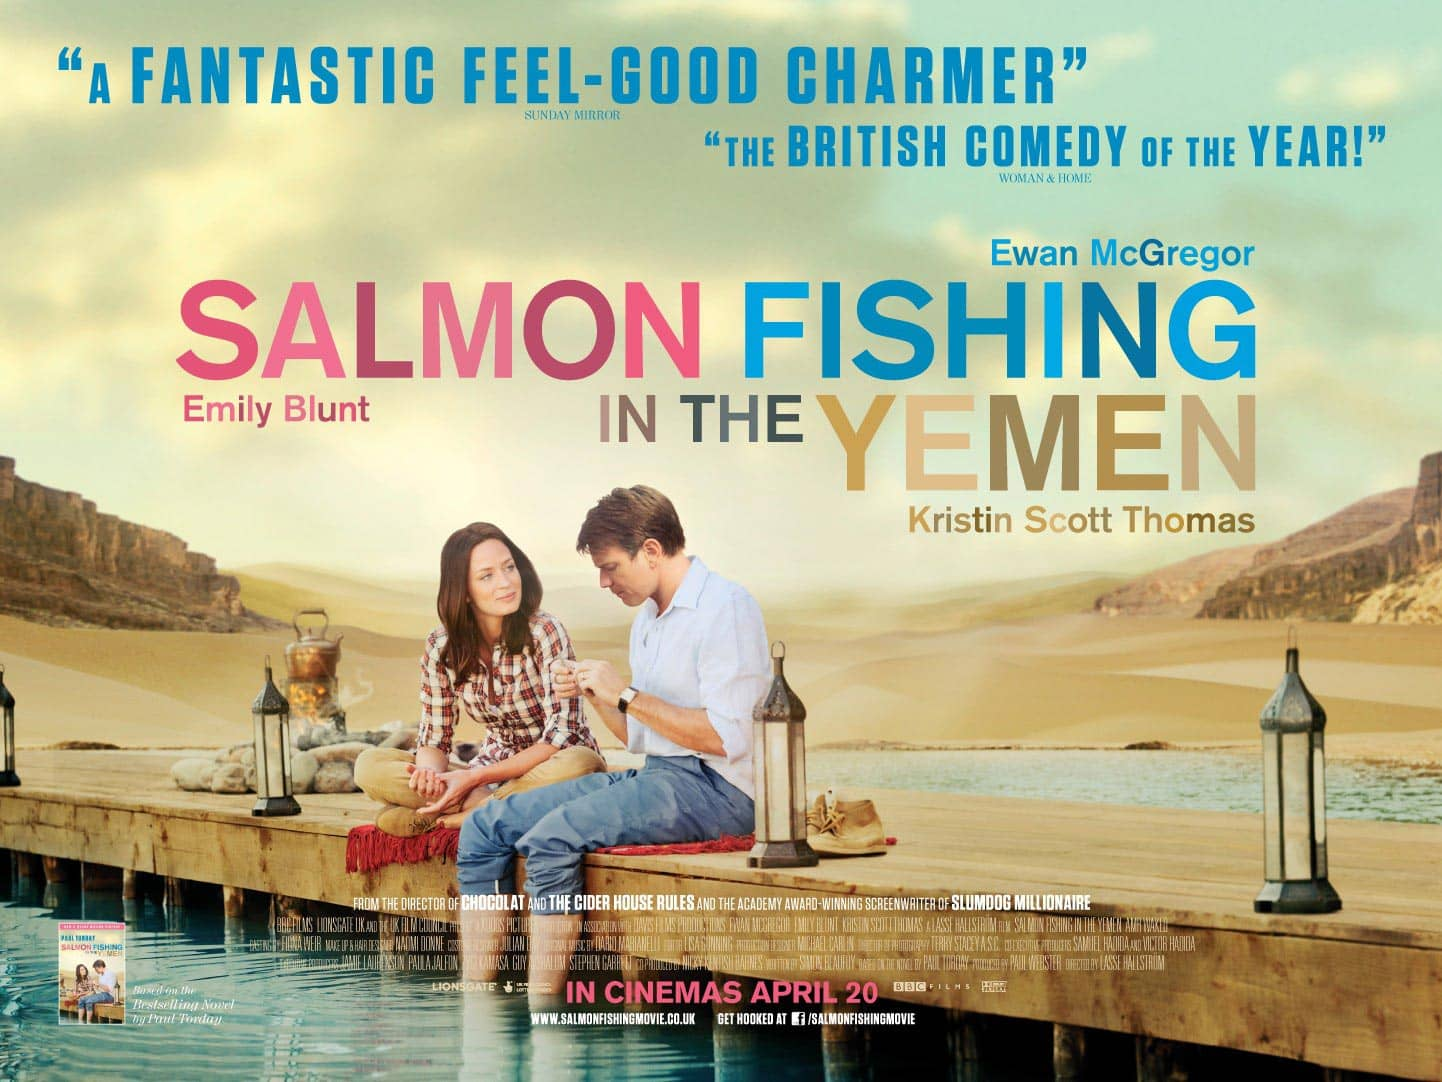 salmon fishing in the yemen movie poster